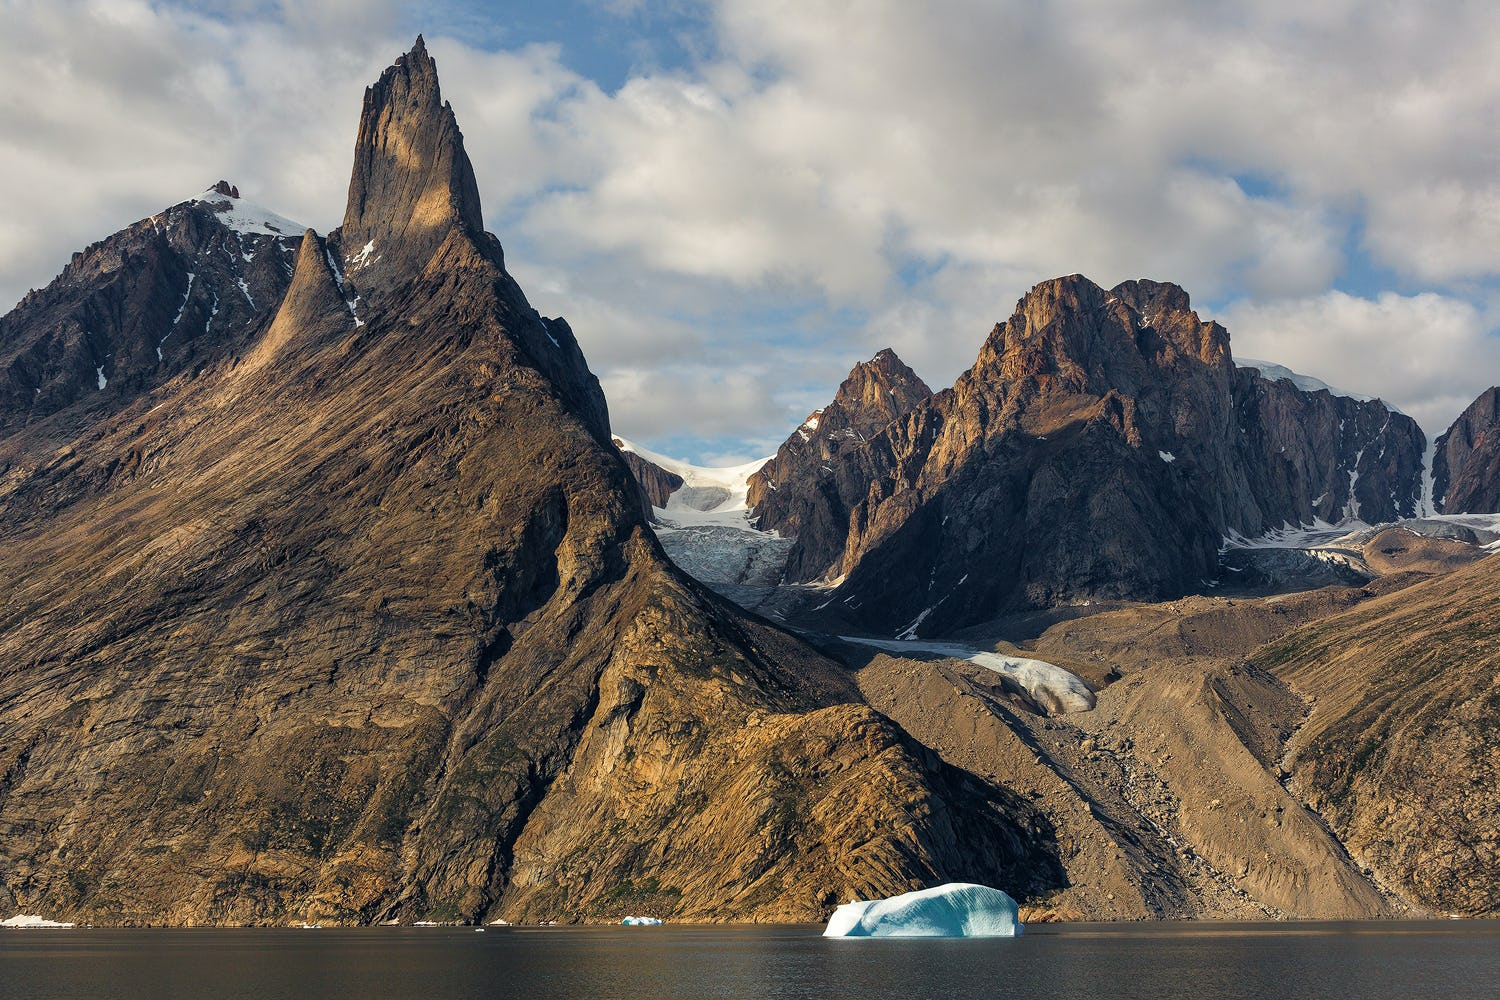 Stunning landscape photo of East Greenland by Iurie Belegurschi.